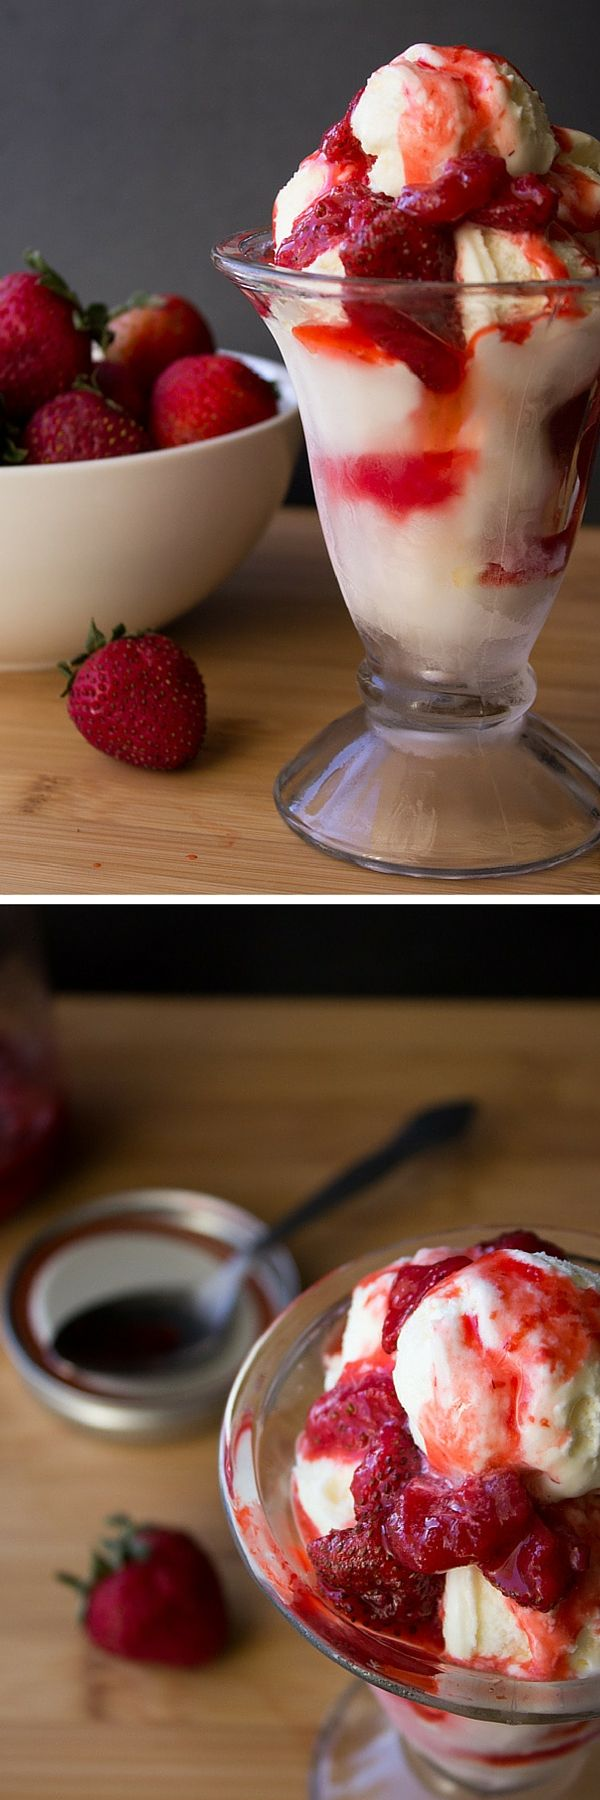 Strawberry Sundae Sauce. Make your own strawberry sundae sauce from scratch - drizzle it on ice cream or pancakes -you'll love this easy recipe!